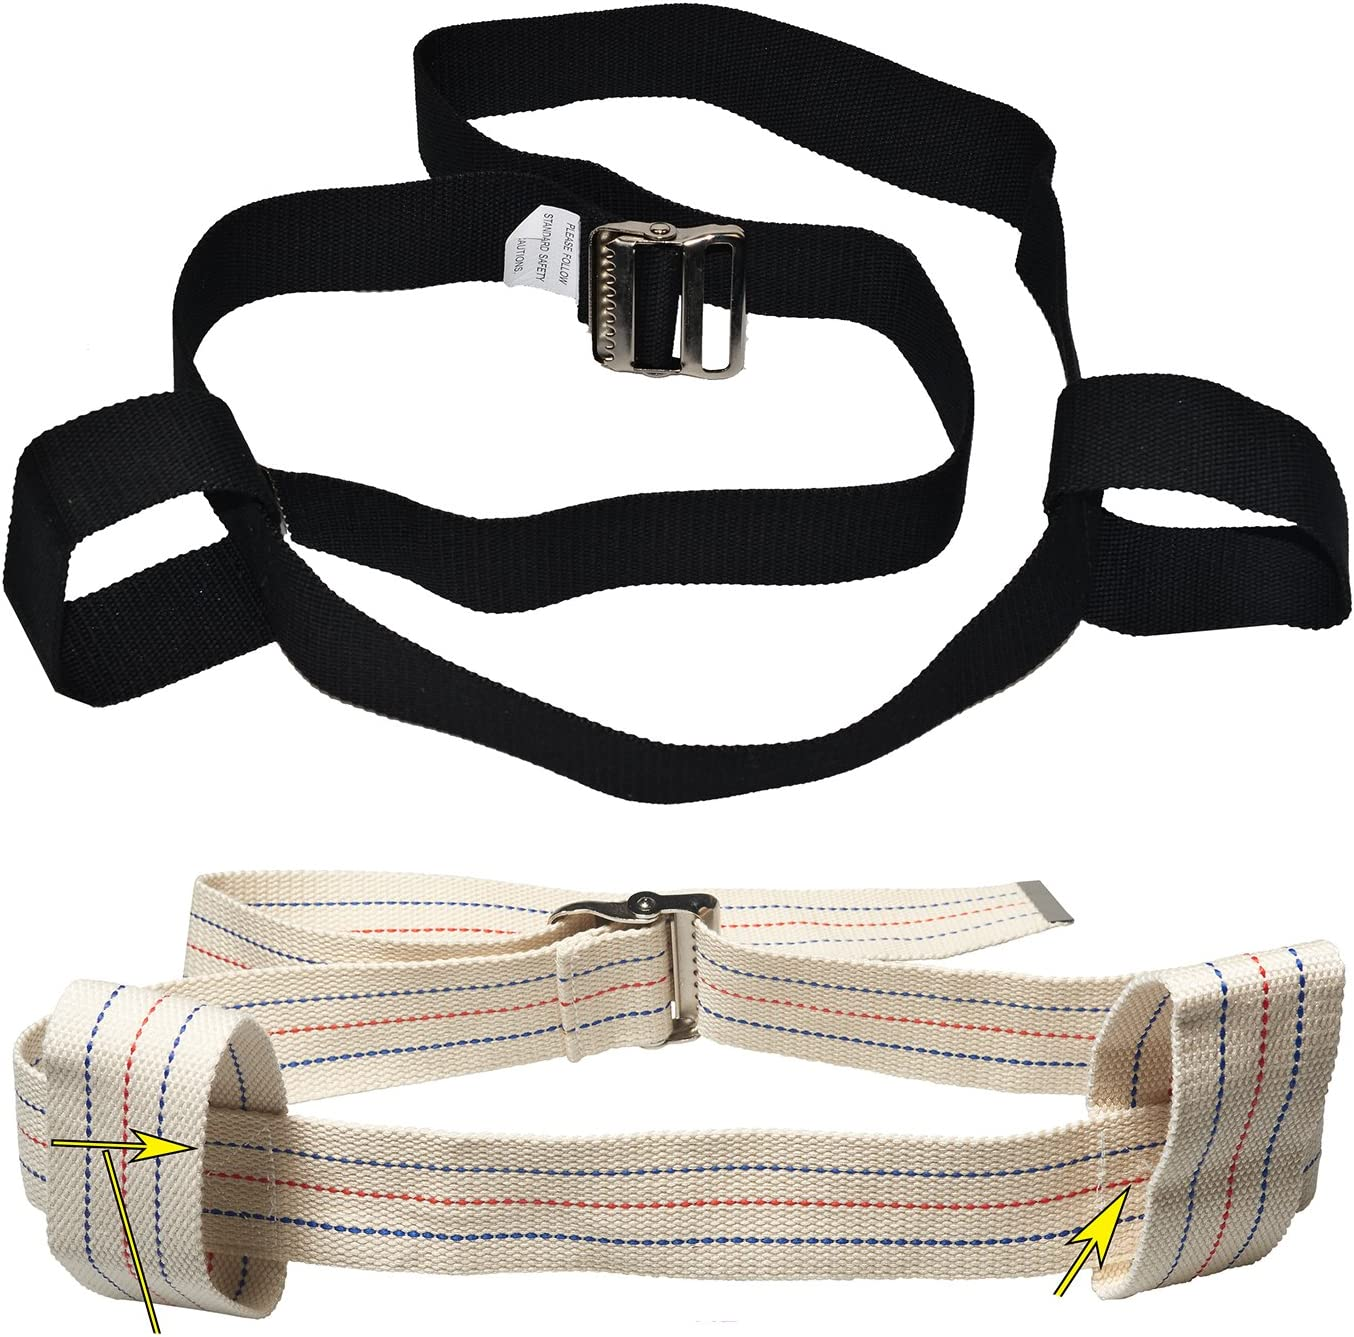 Black 72 mart inches Physical Therapy Gait Popular brand in the world with Handles Belt 2 Looped